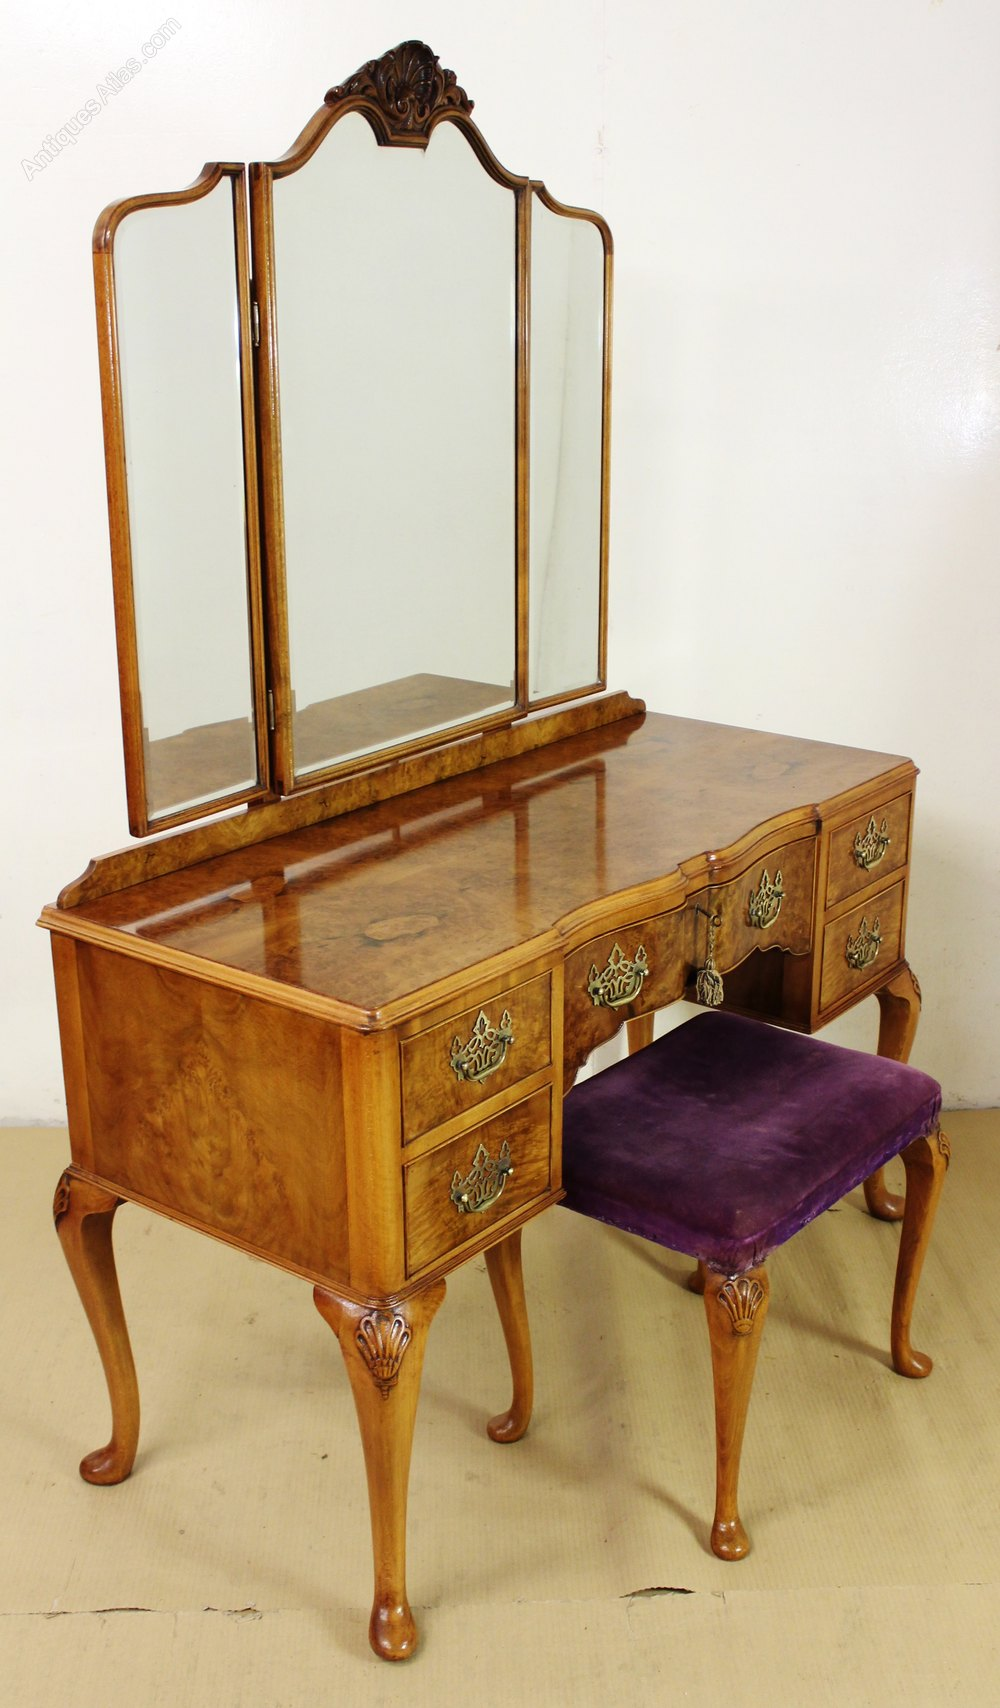 Dressing Table Chairs And Stools: Burr Walnut Dressing Table And Stool